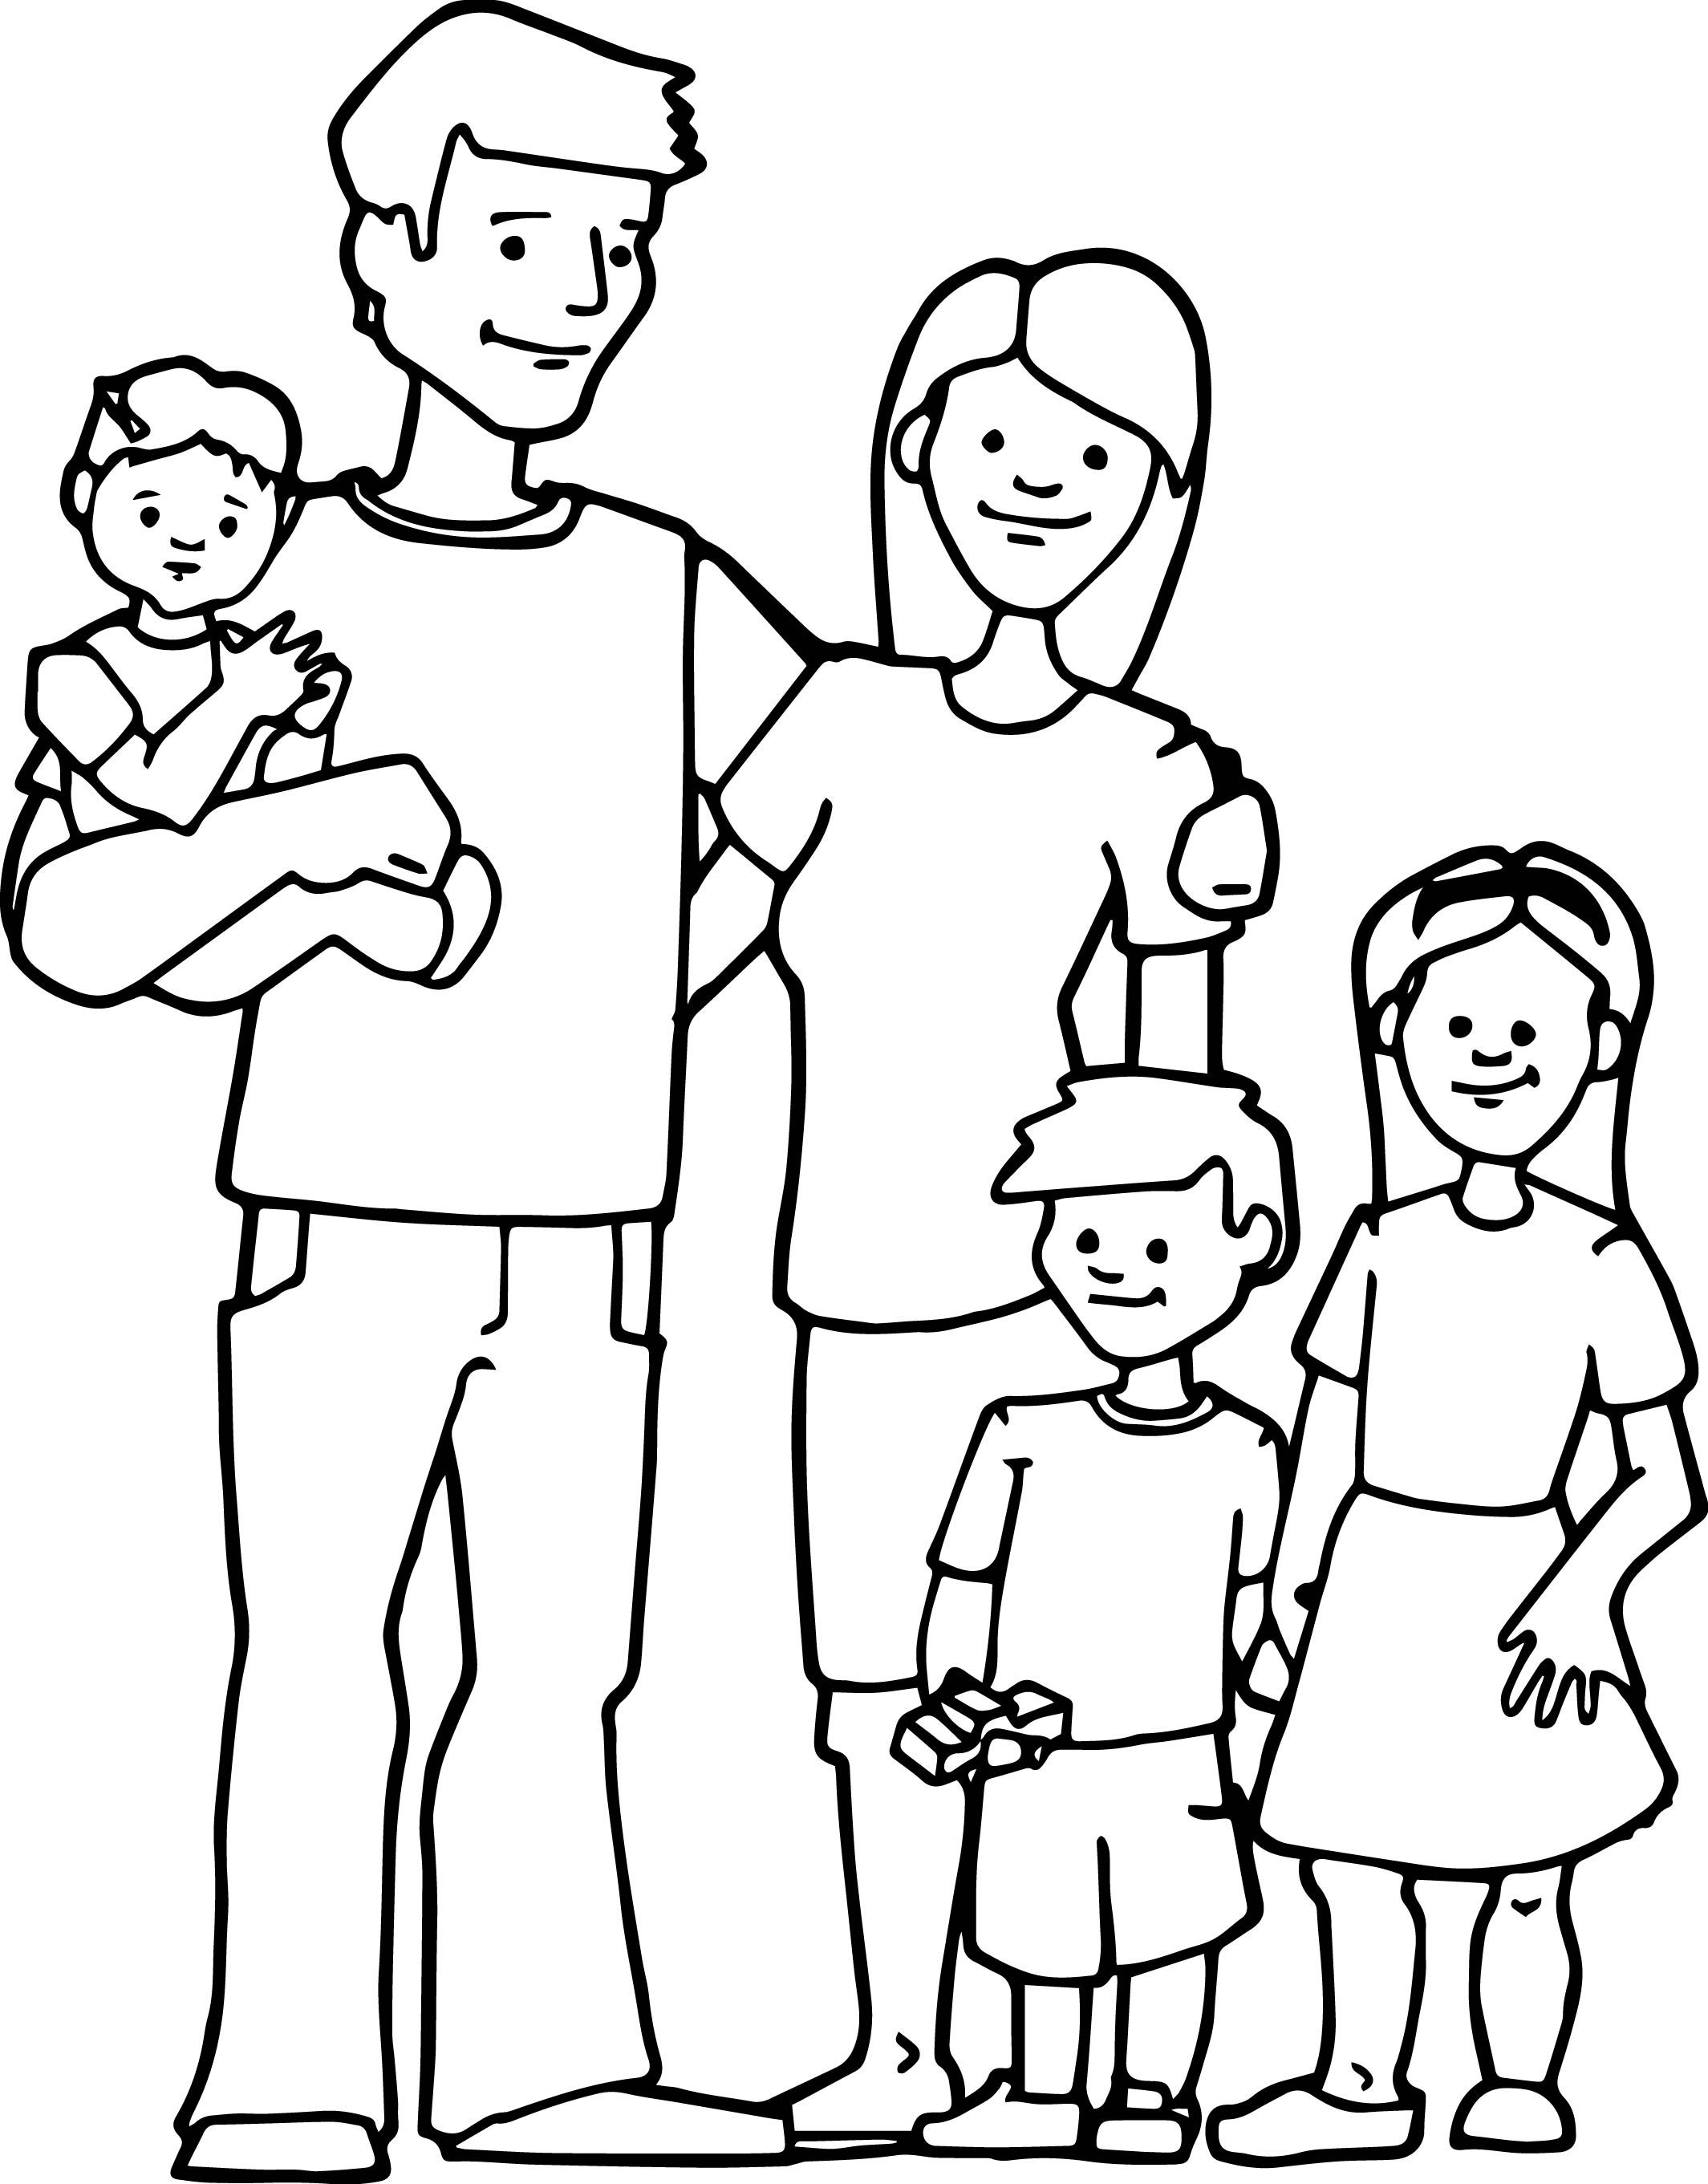 family coloring sheets free printable family coloring sheets for kids coloring family coloring sheets